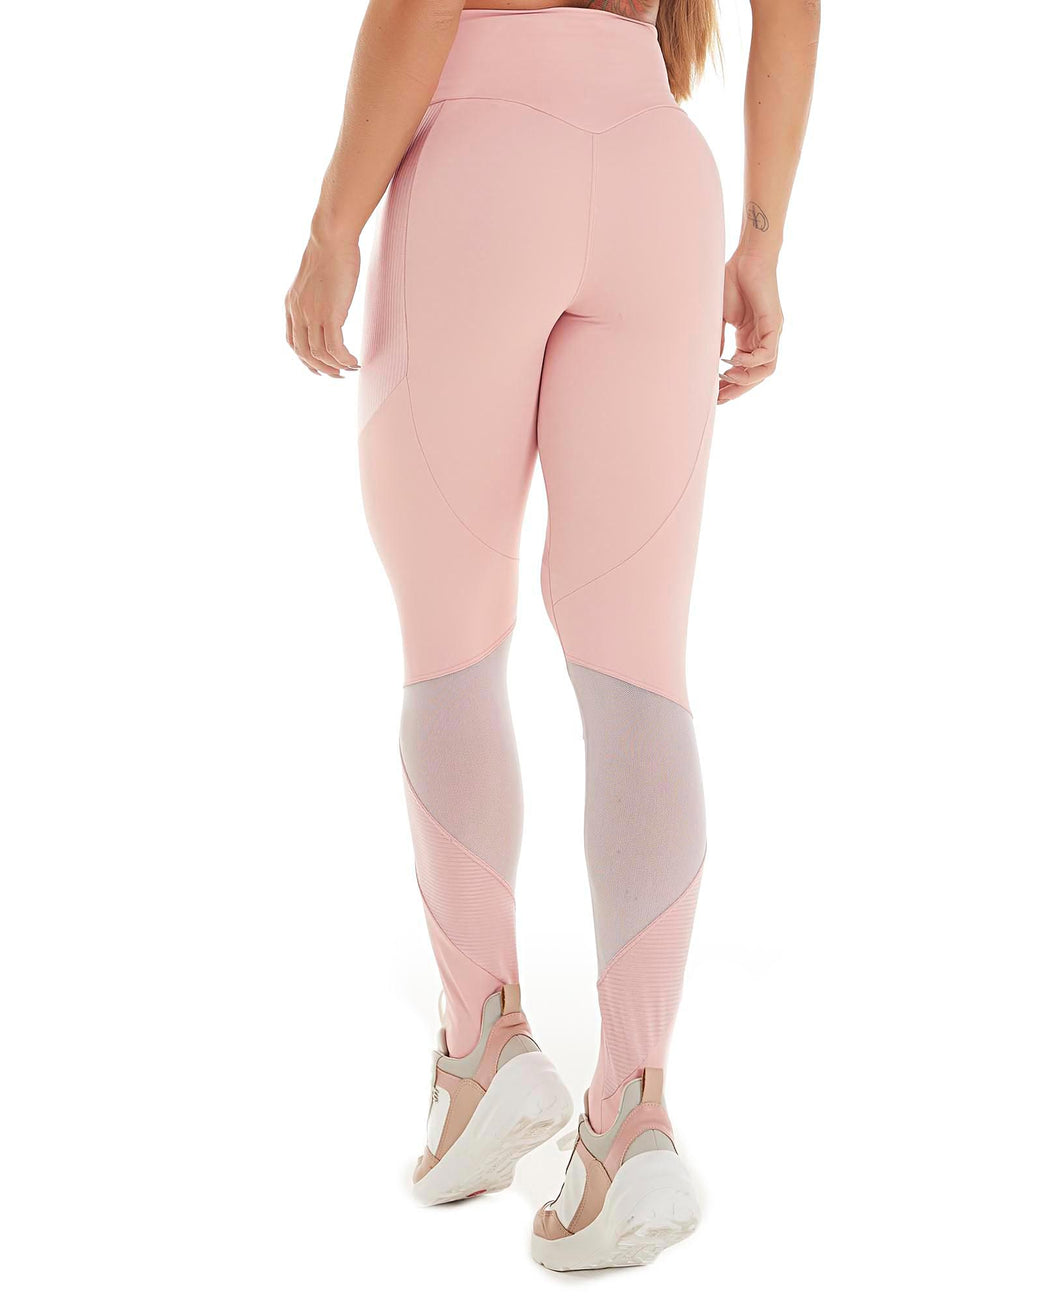 Let's Gym Legging Canelle Shine - Rose - L784